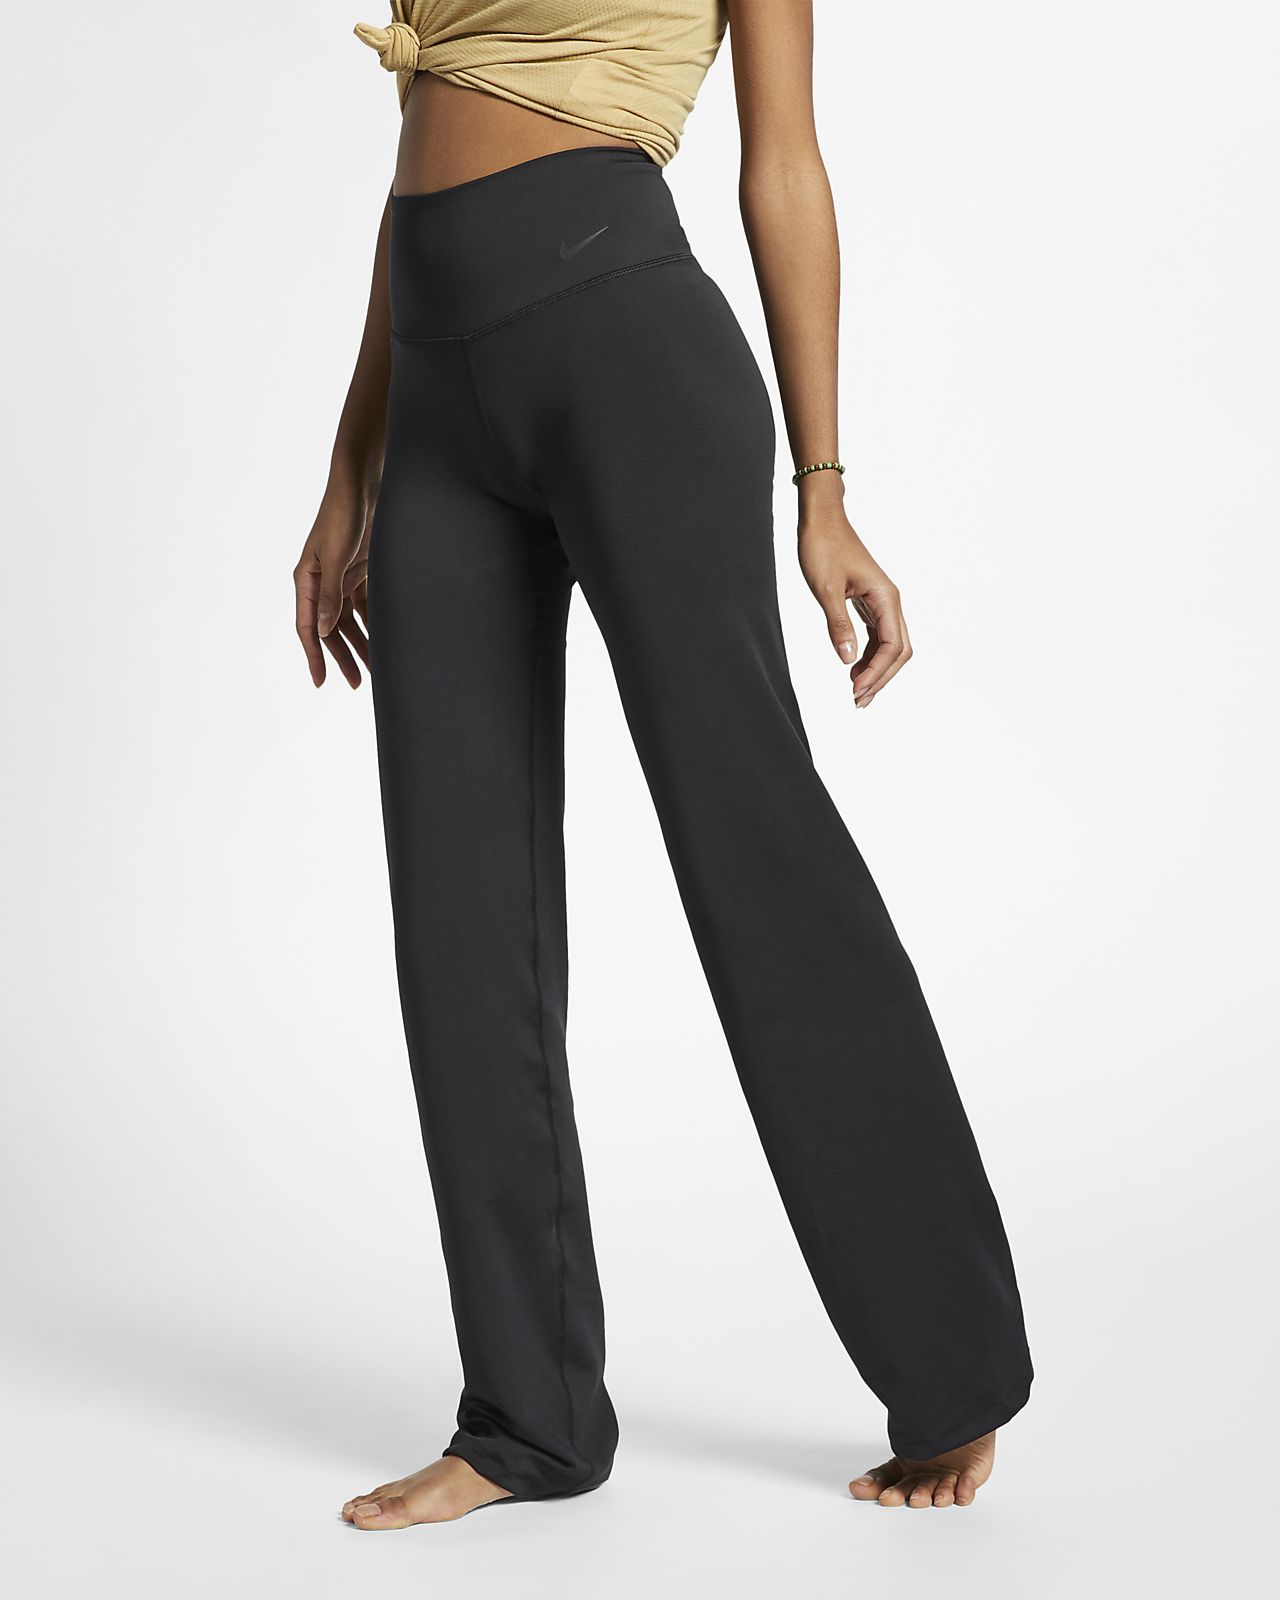 Pantaloni da yoga Nike Power - Donna